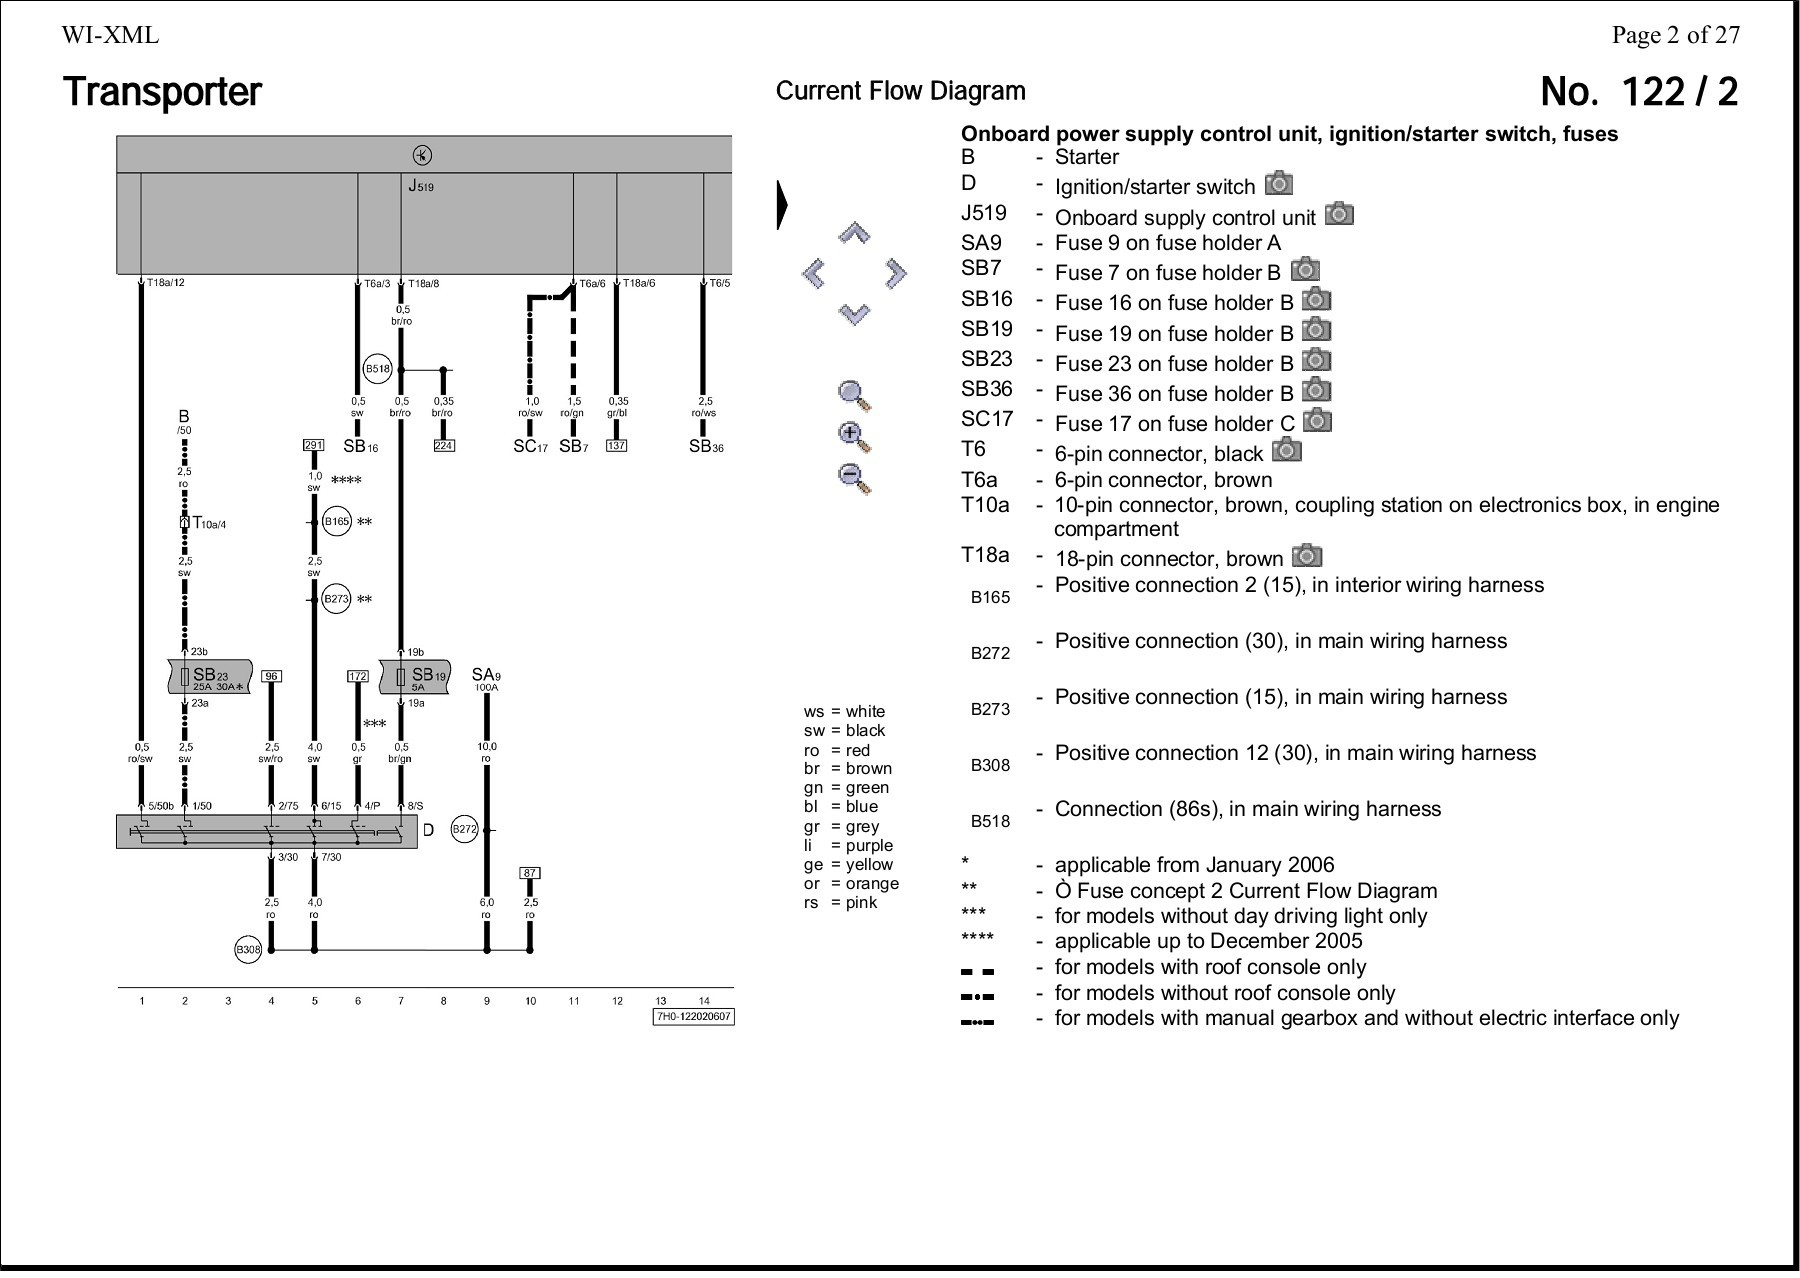 hight resolution of transporter current flow diagram no 122 1 pages 1 27 text version fliphtml5